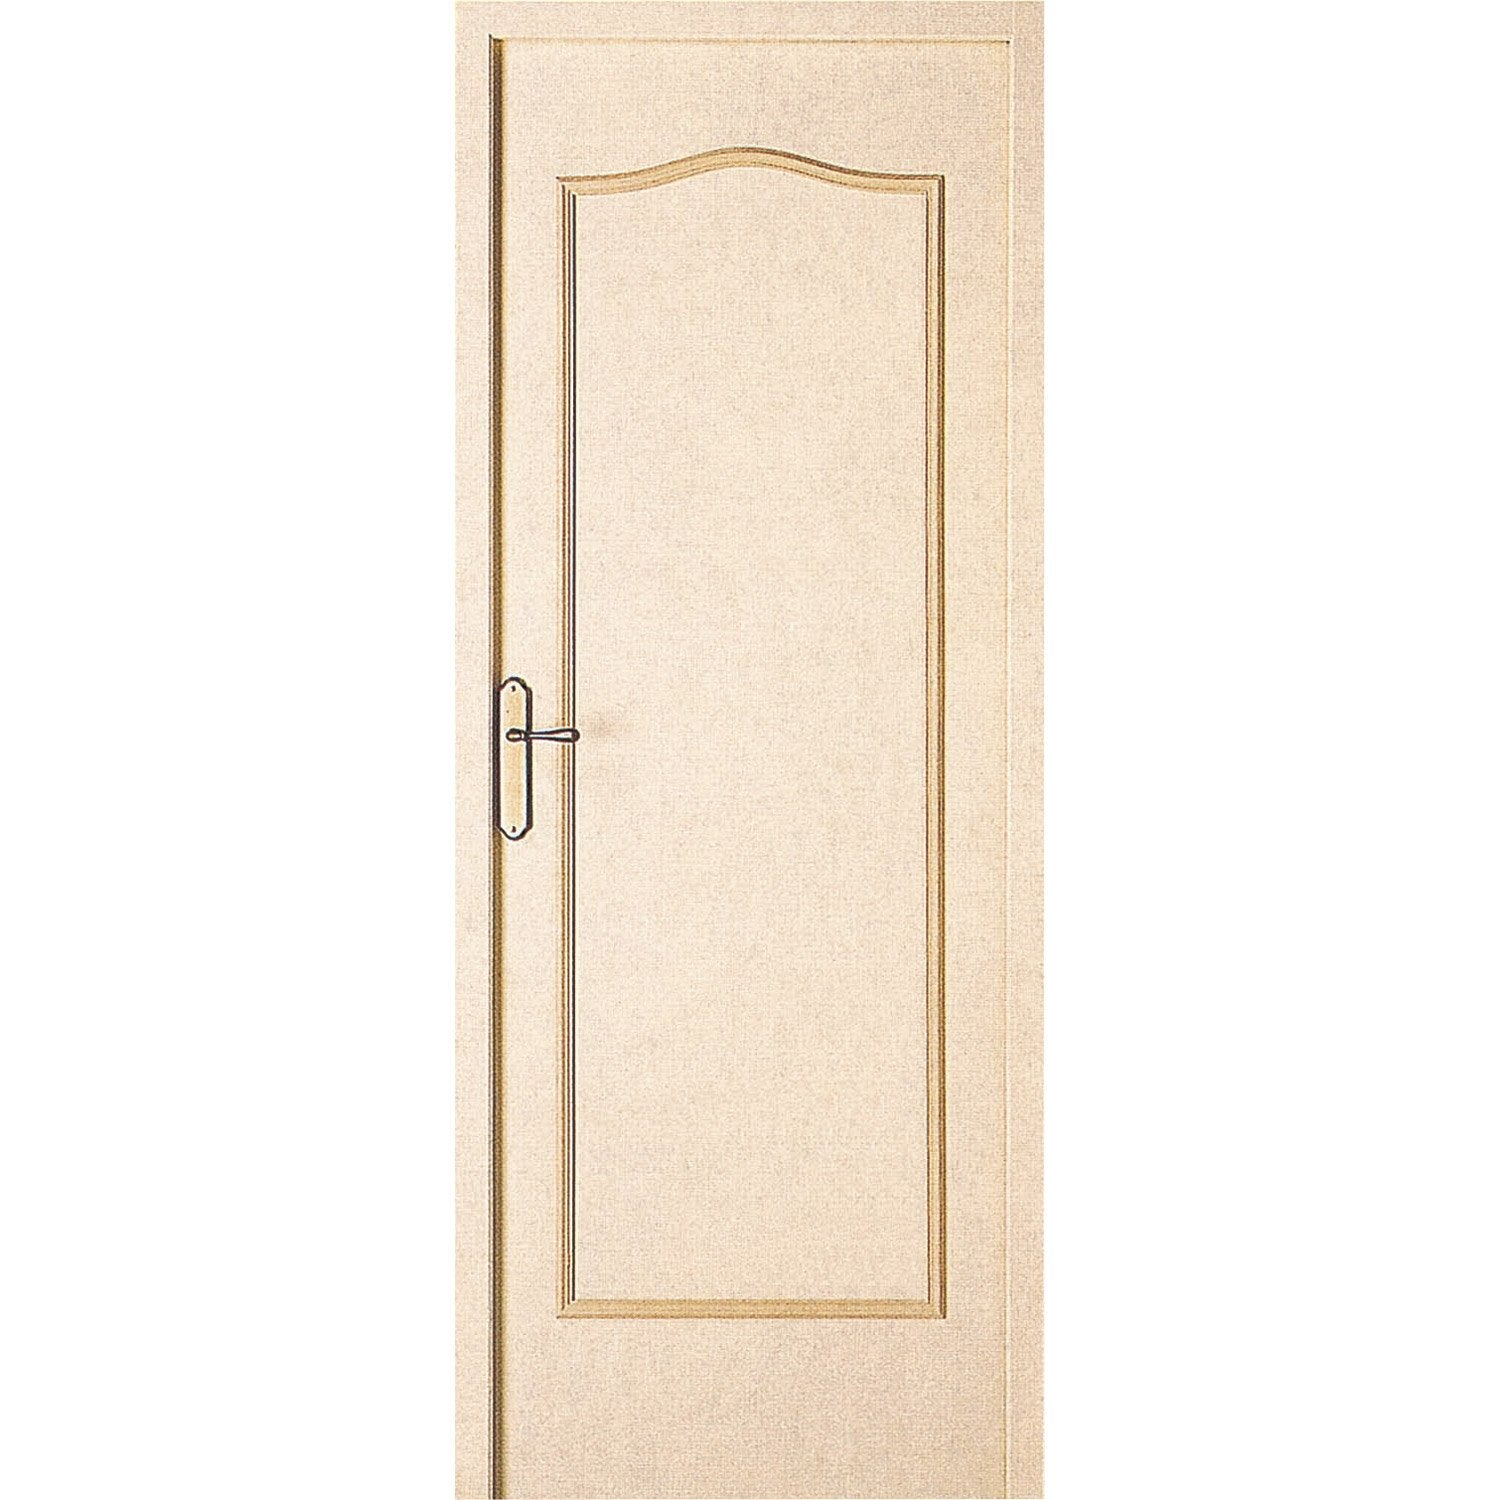 Decor pour porte interieure 28 images decoration porte - Decoration de porte interieur ...